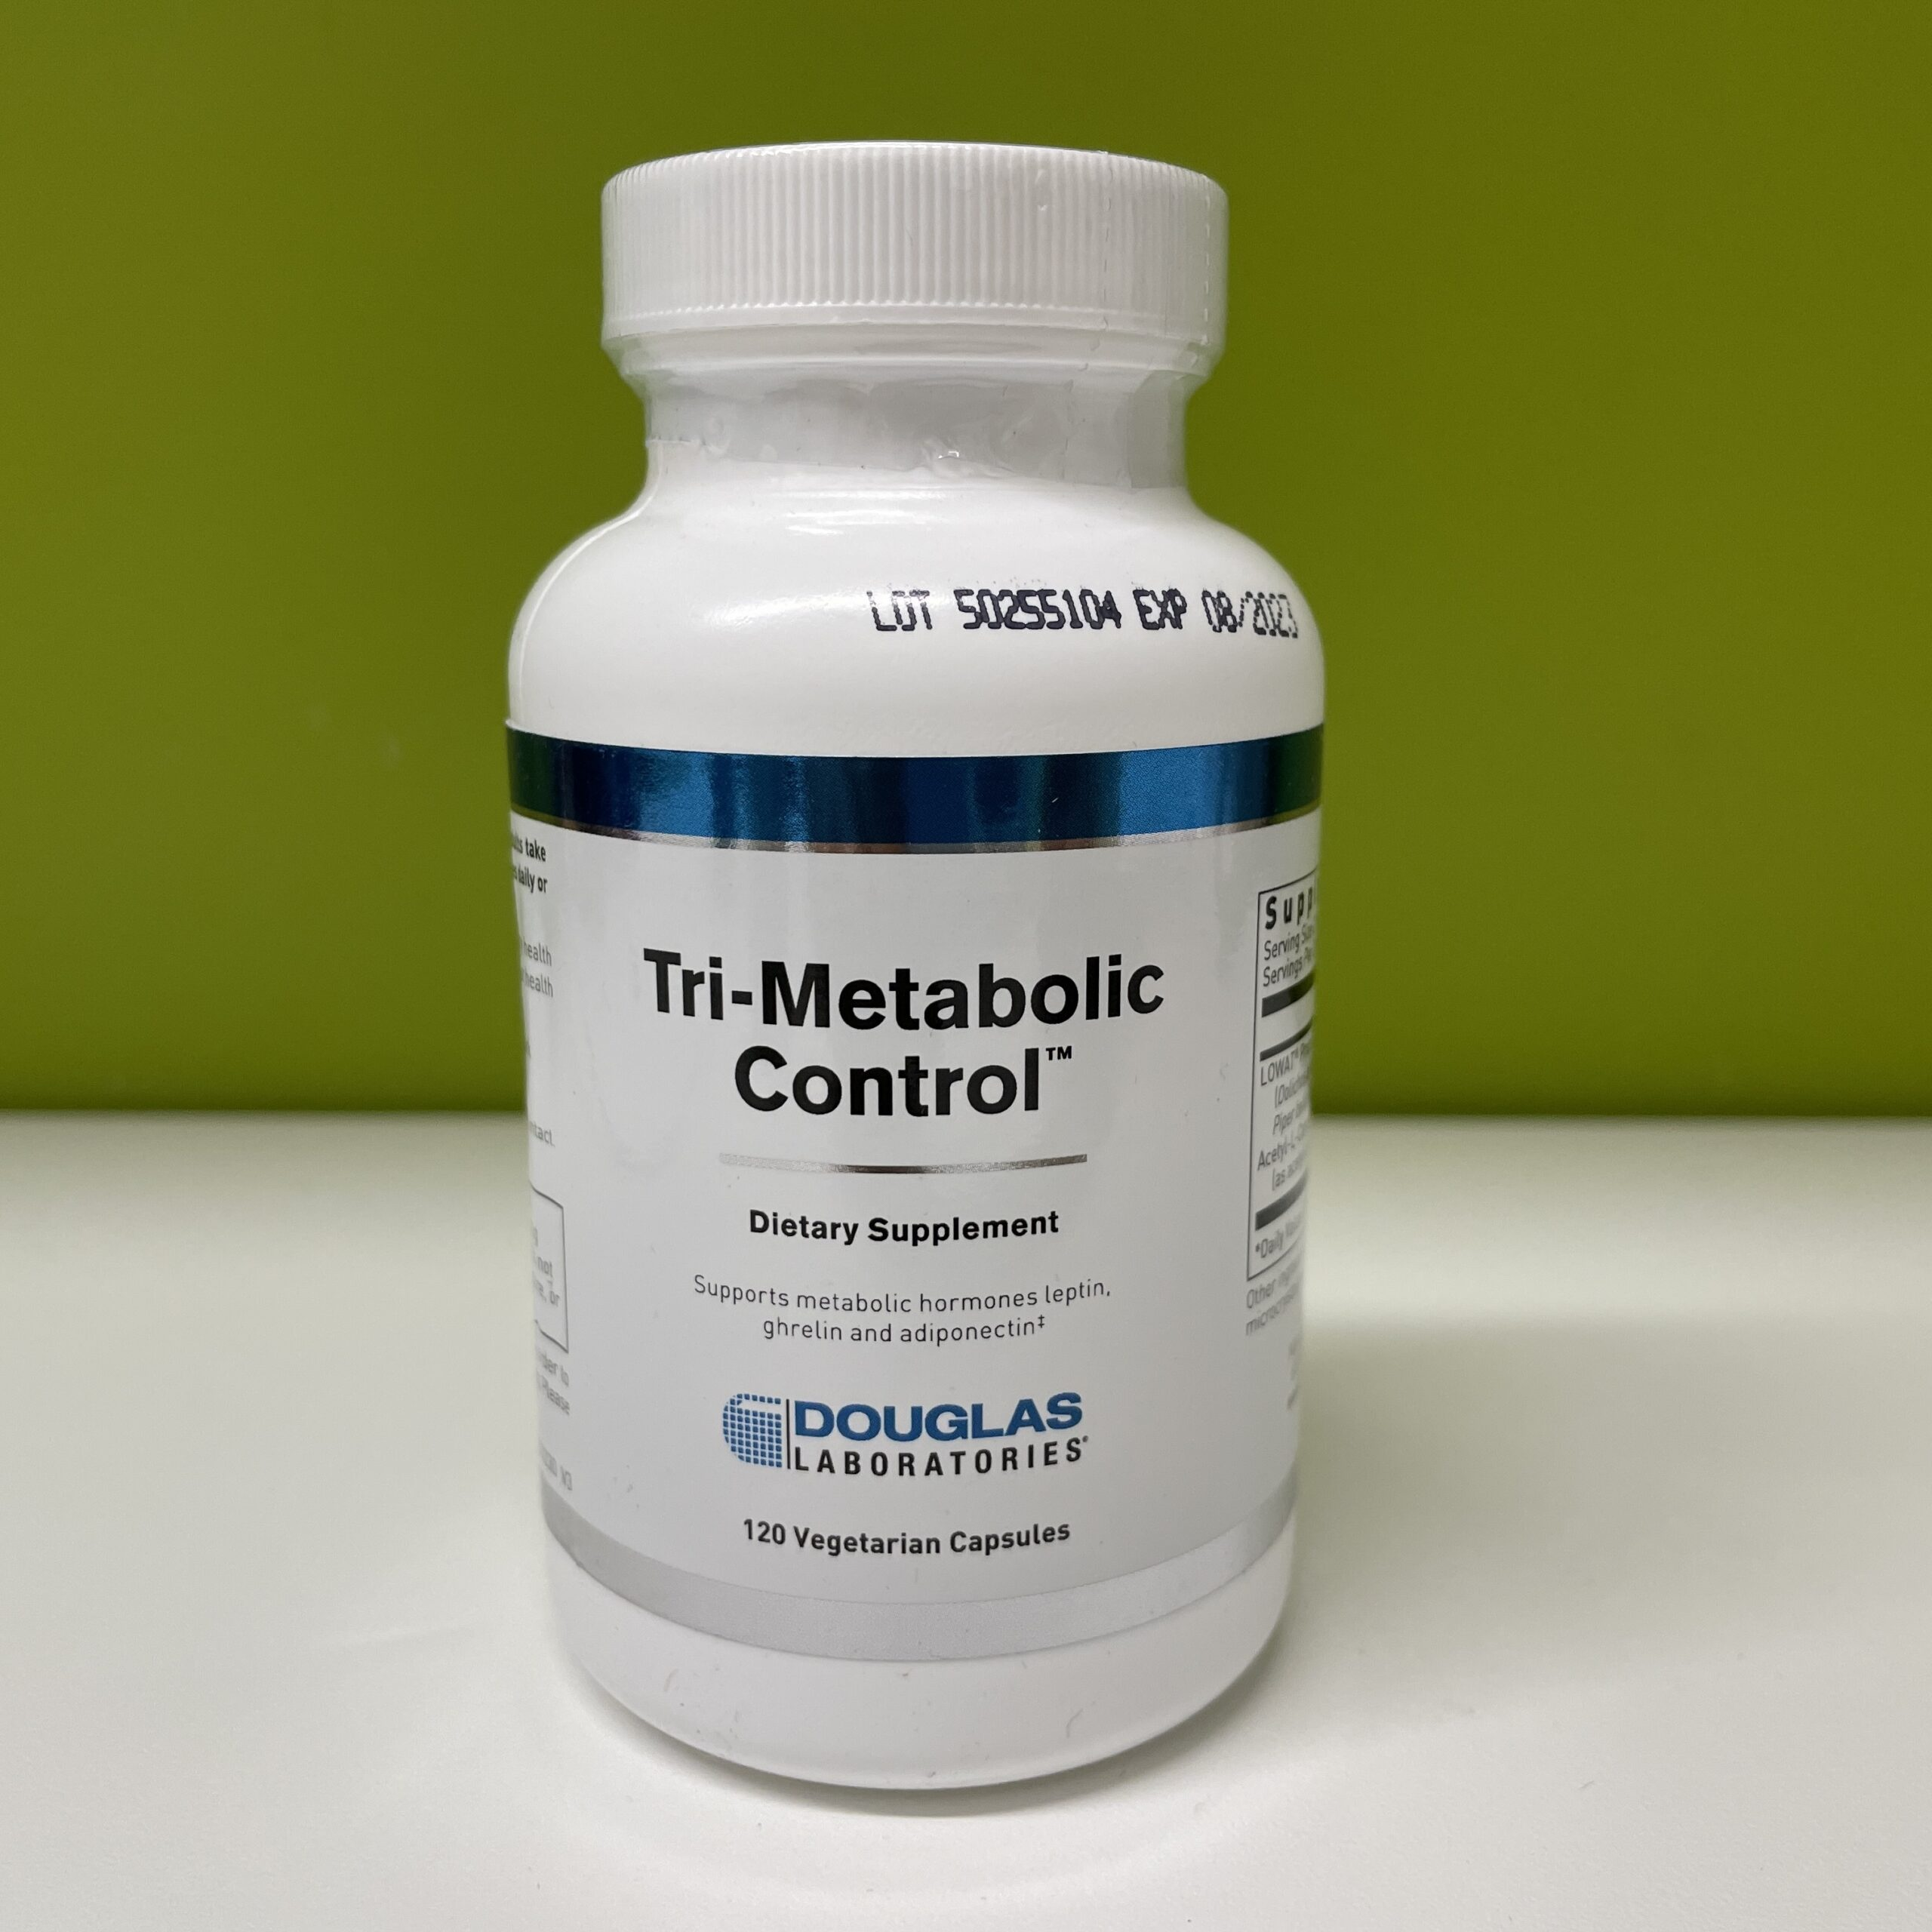 Tri-Metabolic is great for the carb cravers. It helps make you feel full and not feel the need for more carbs. Tri-Metabolic Control combines the clinically studied extracts of the Piper betleleaf andDolichos biflorusseed plus acetyl-L-carnitine to support three metabolic hormones: adiponectin, leptin, and ghrelin to help control appetite, satiety and fat metabolism as part of a healthy weight management program.